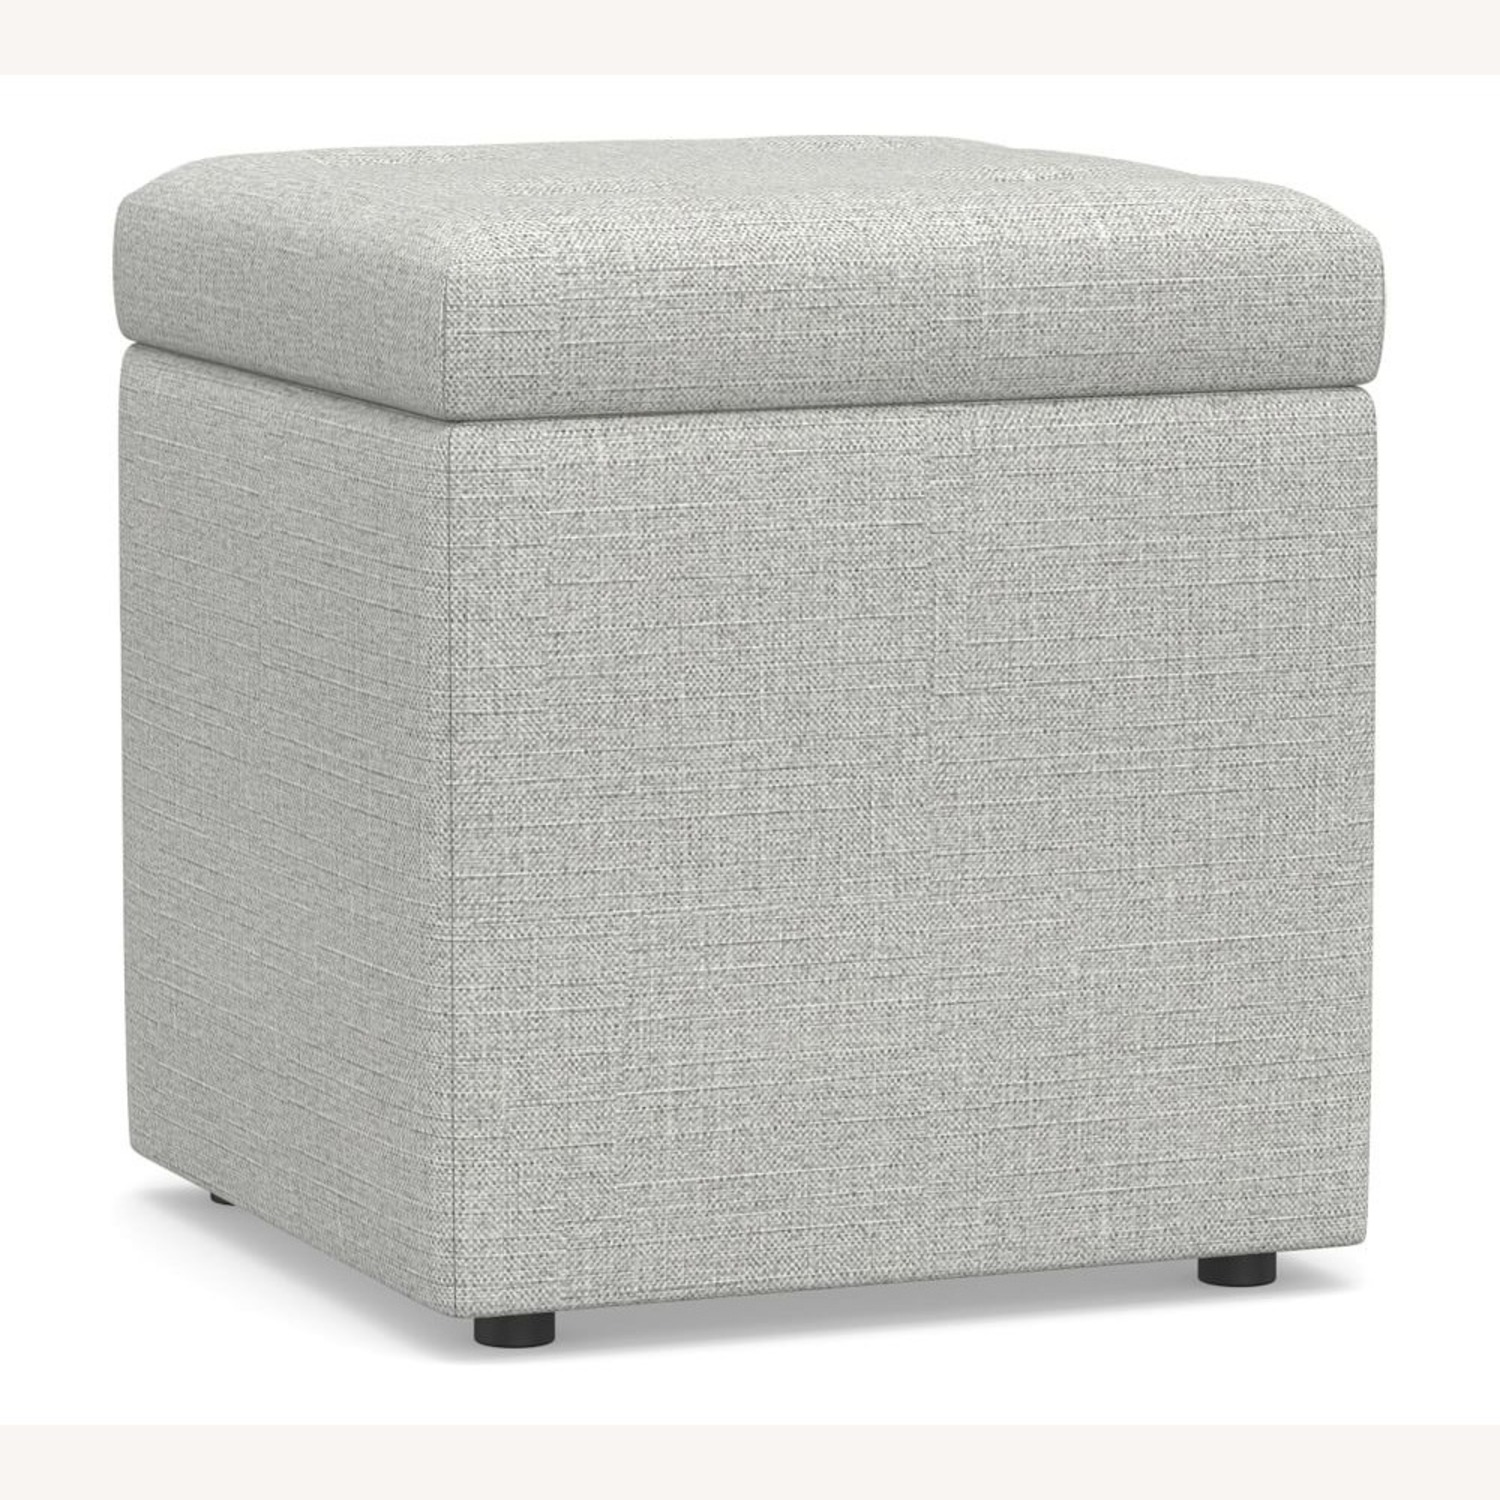 Pottery Barn Marlow Upholstered Storage Cube - image-1